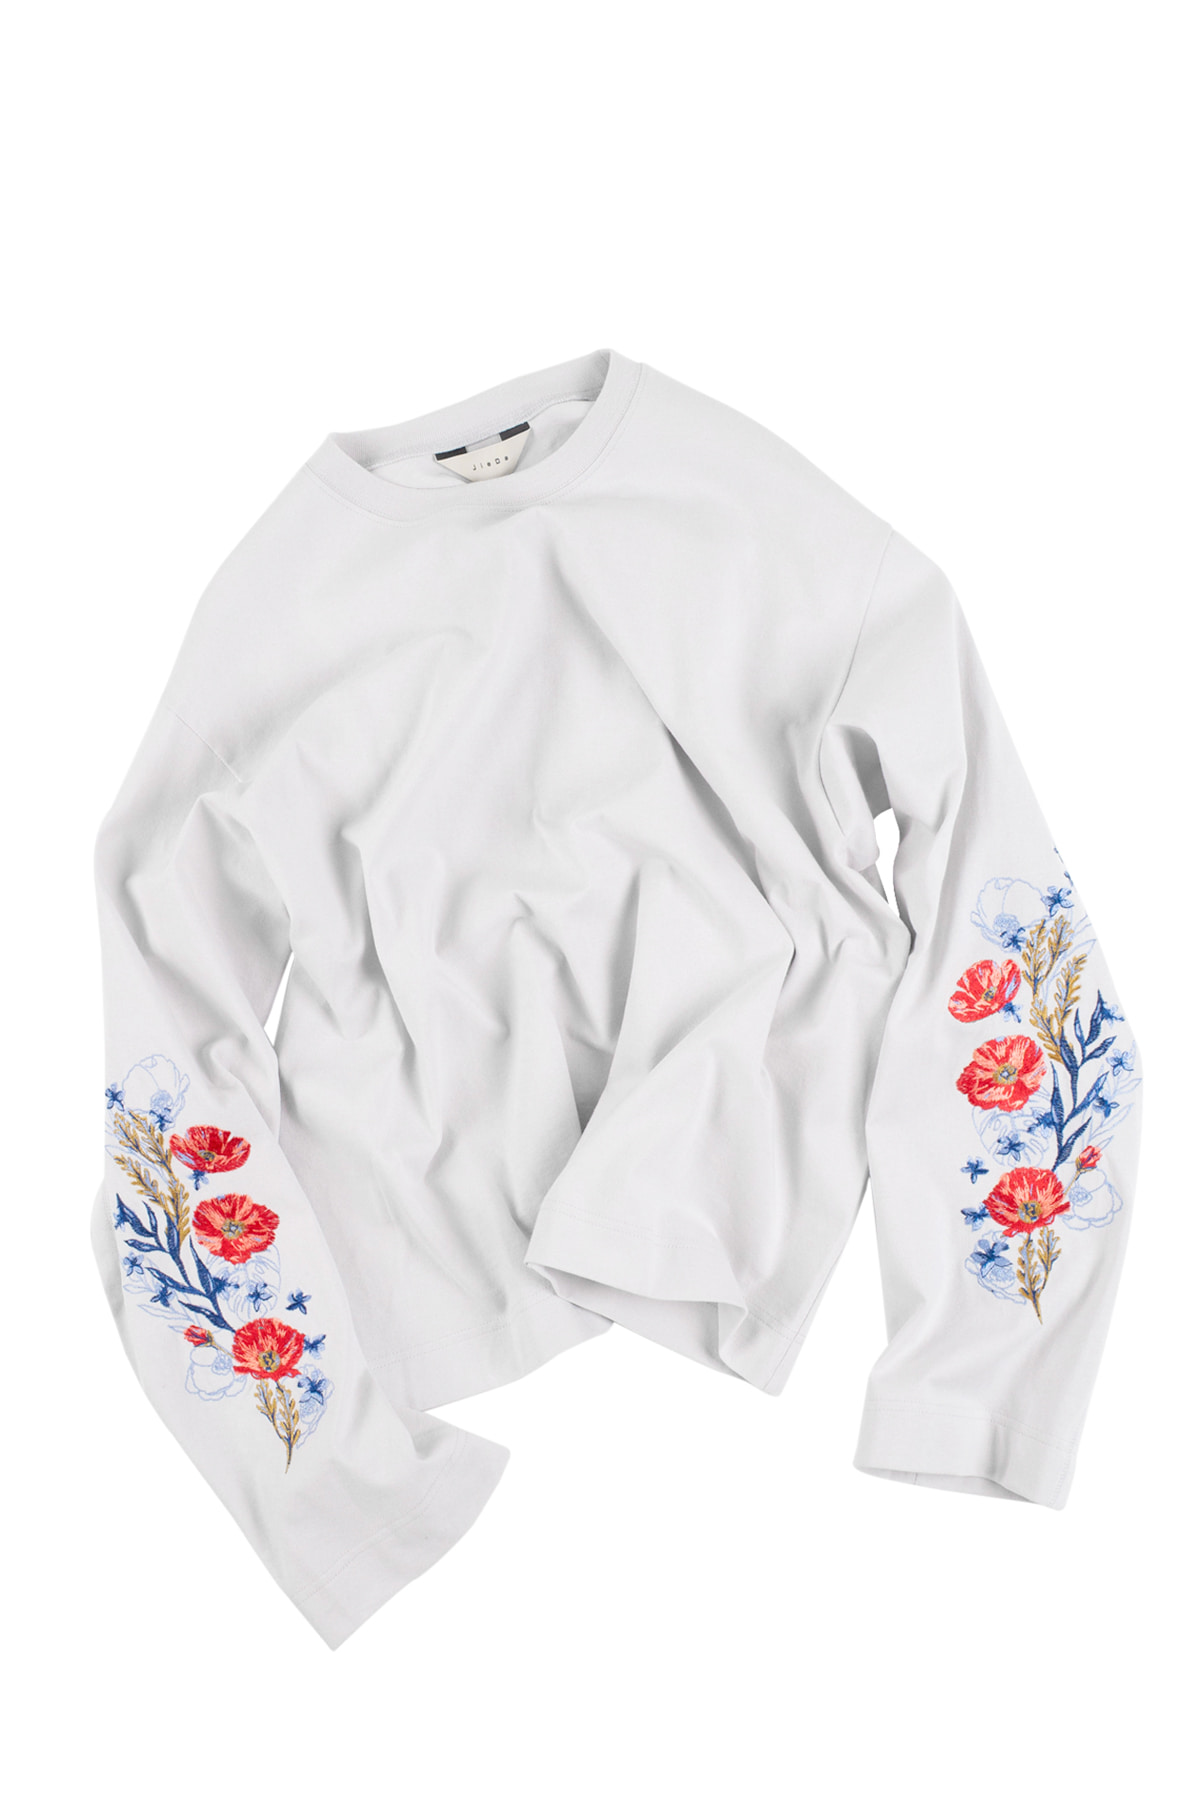 JieDa : Flower Embroiderey L/S (White)